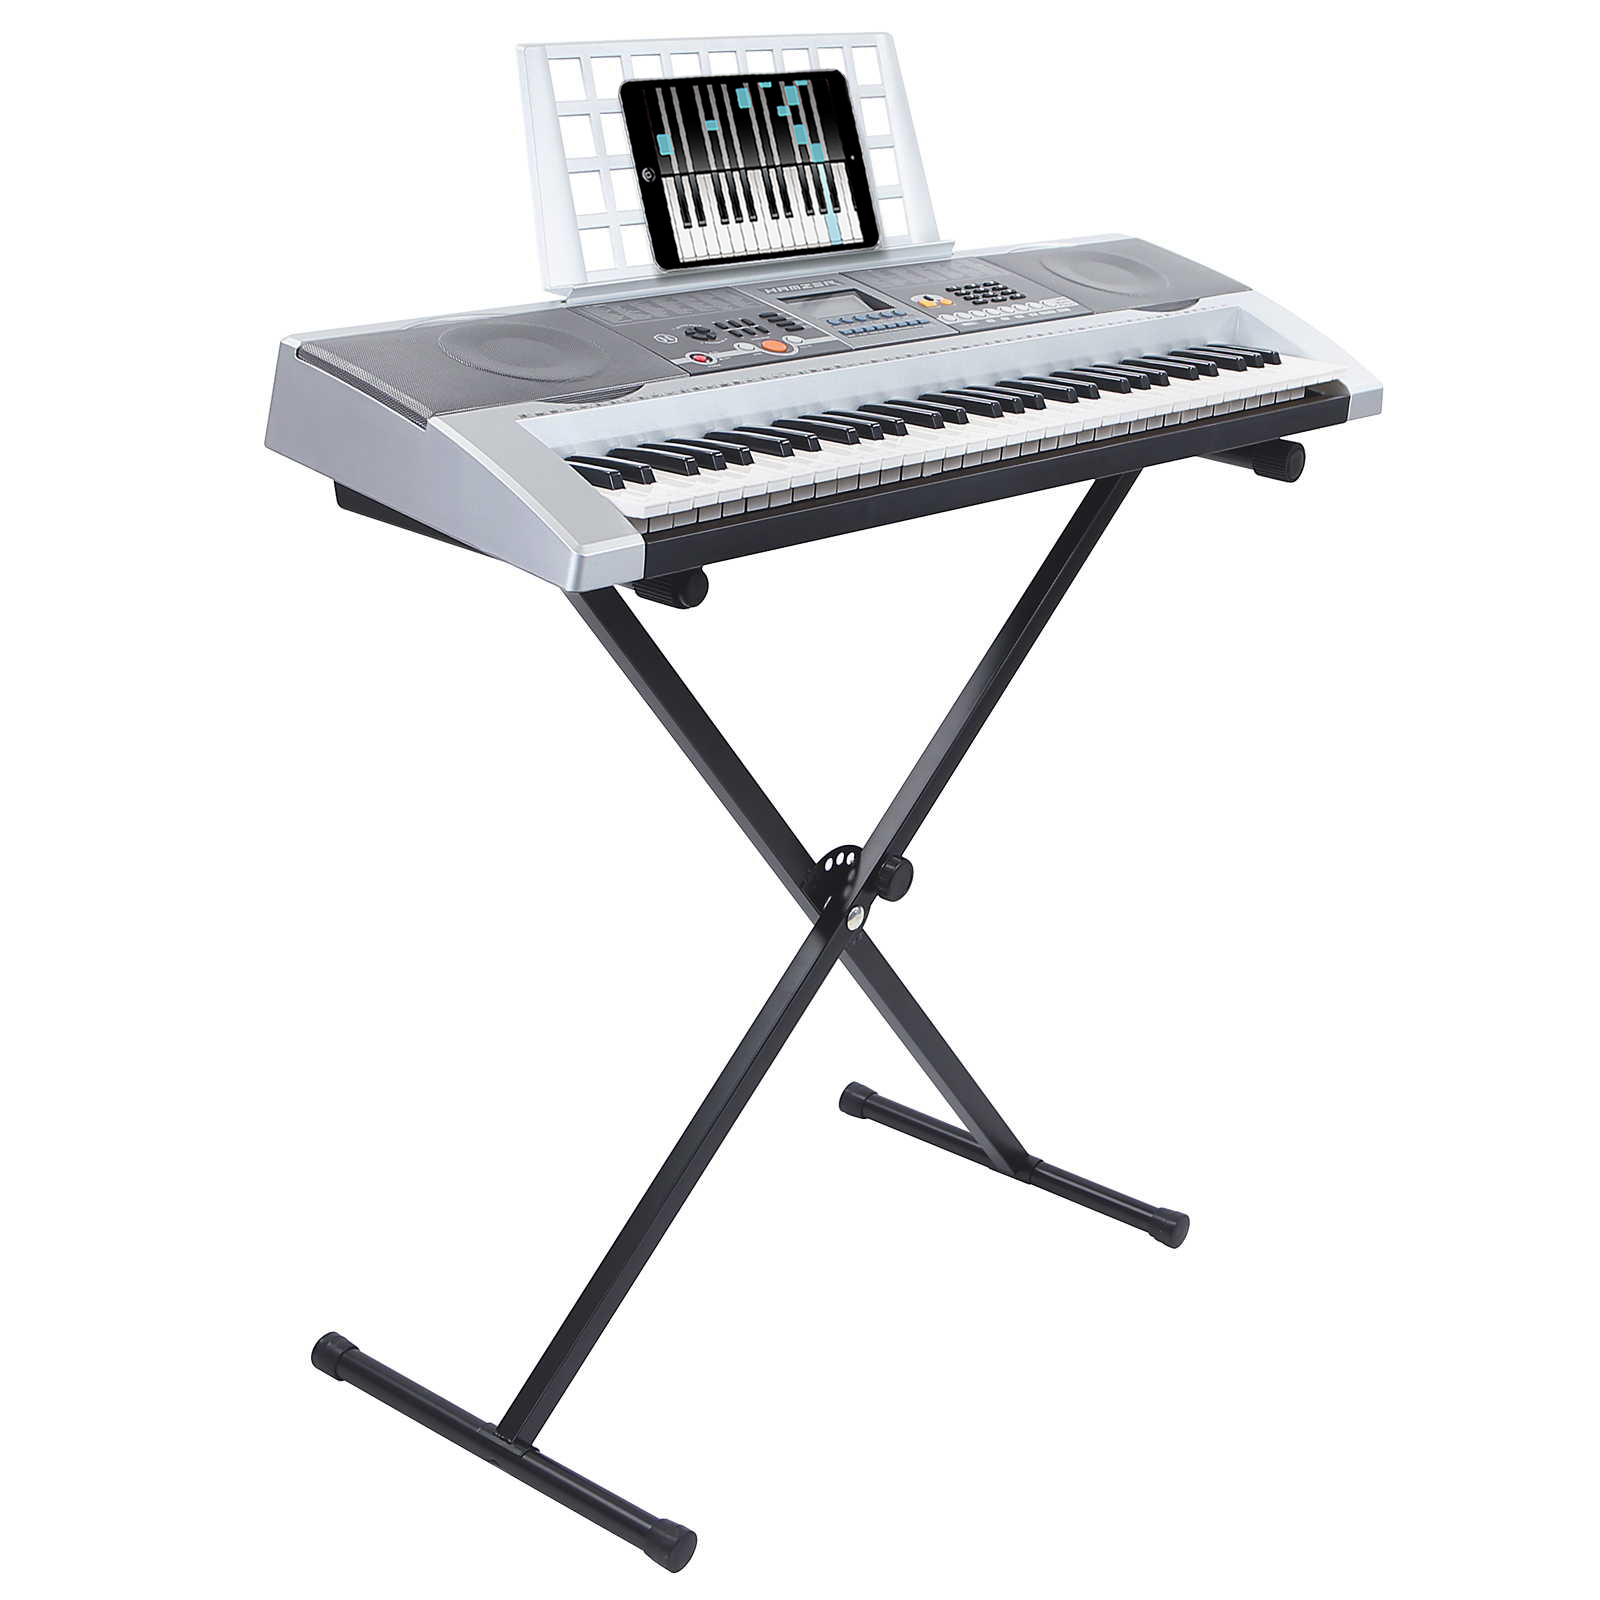 61 key electronic piano electric organ usb keyboard with stand silver ebay. Black Bedroom Furniture Sets. Home Design Ideas